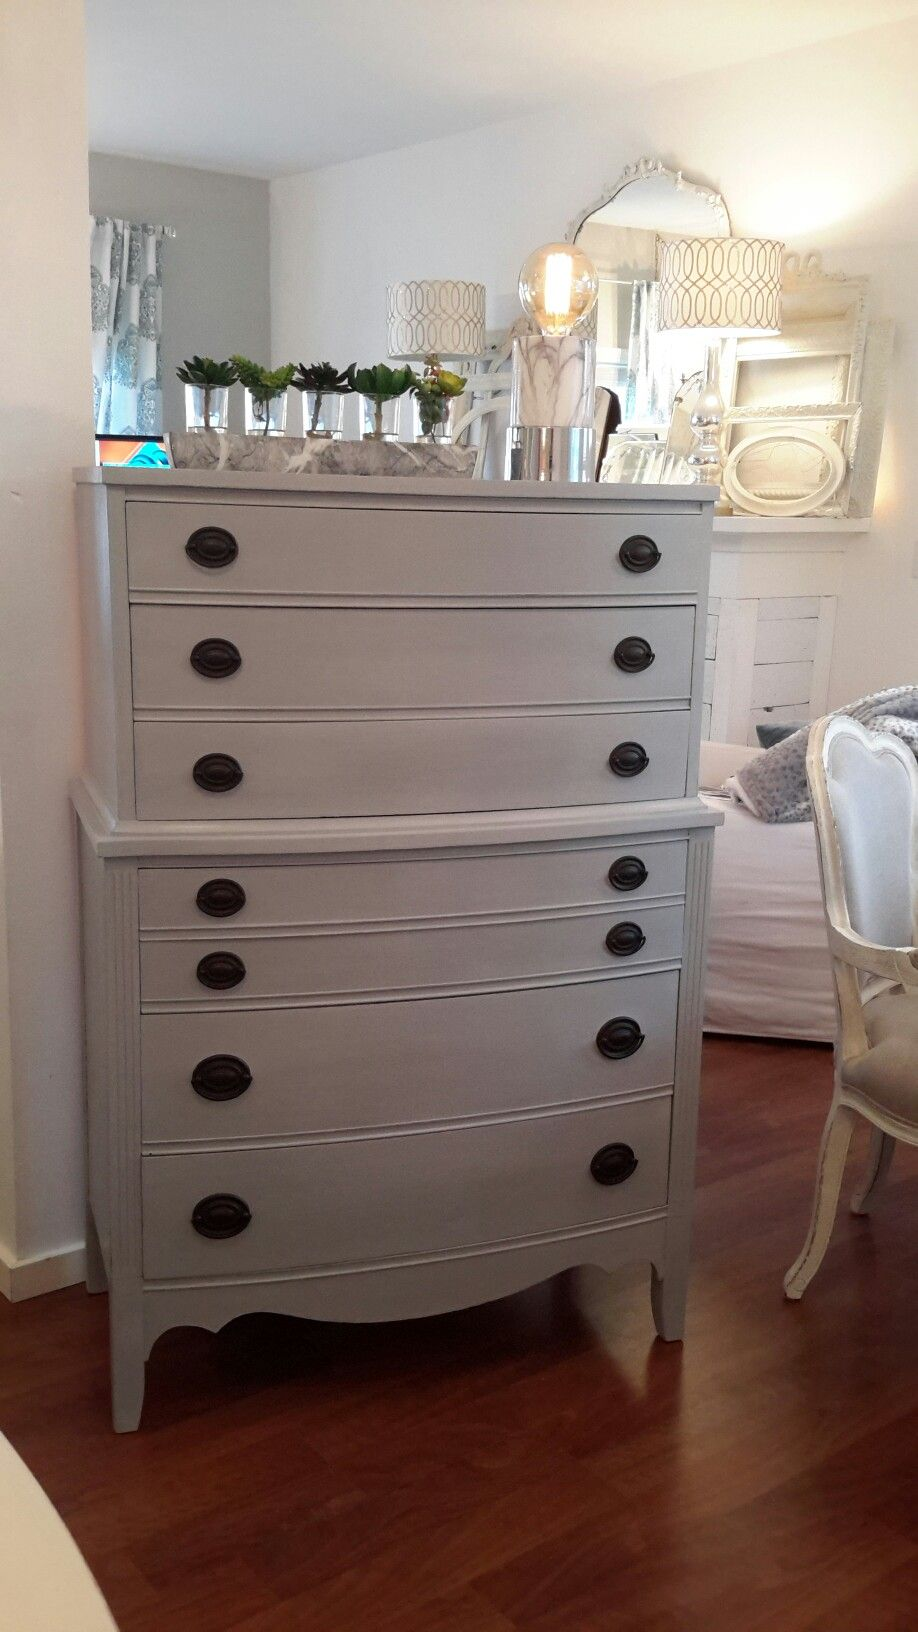 Paris Grey Annie Sloan Chalk Paint Highboy Dresser By Recherished Root S